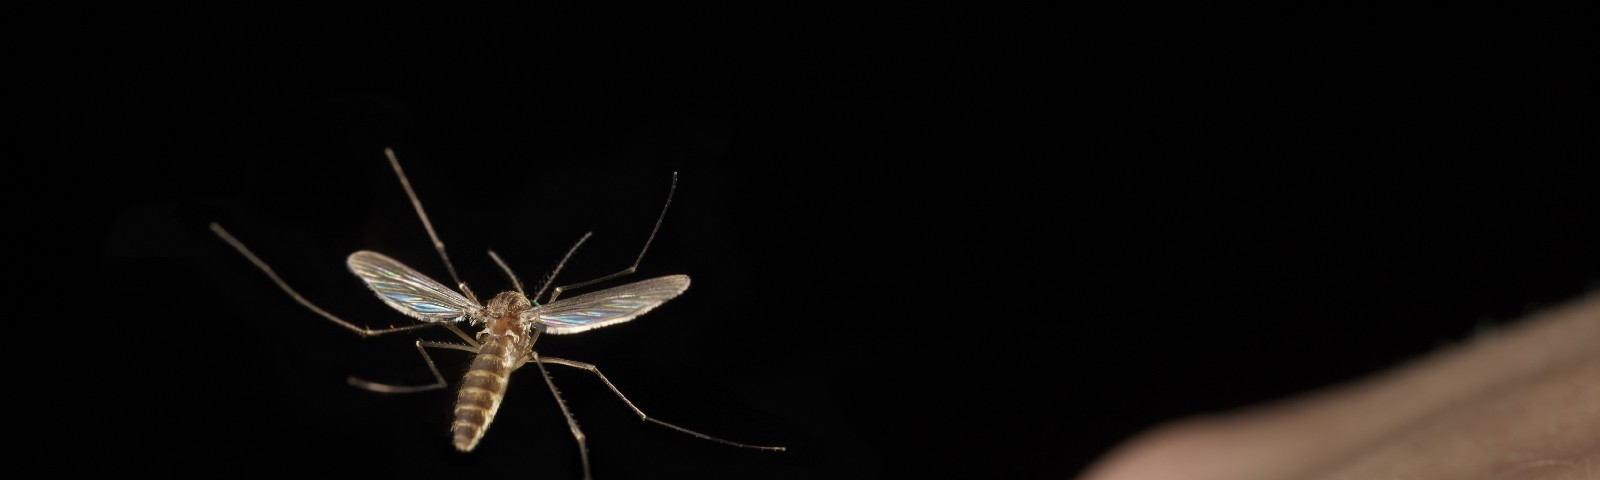 A mosquito about to fly onto a person's hand.